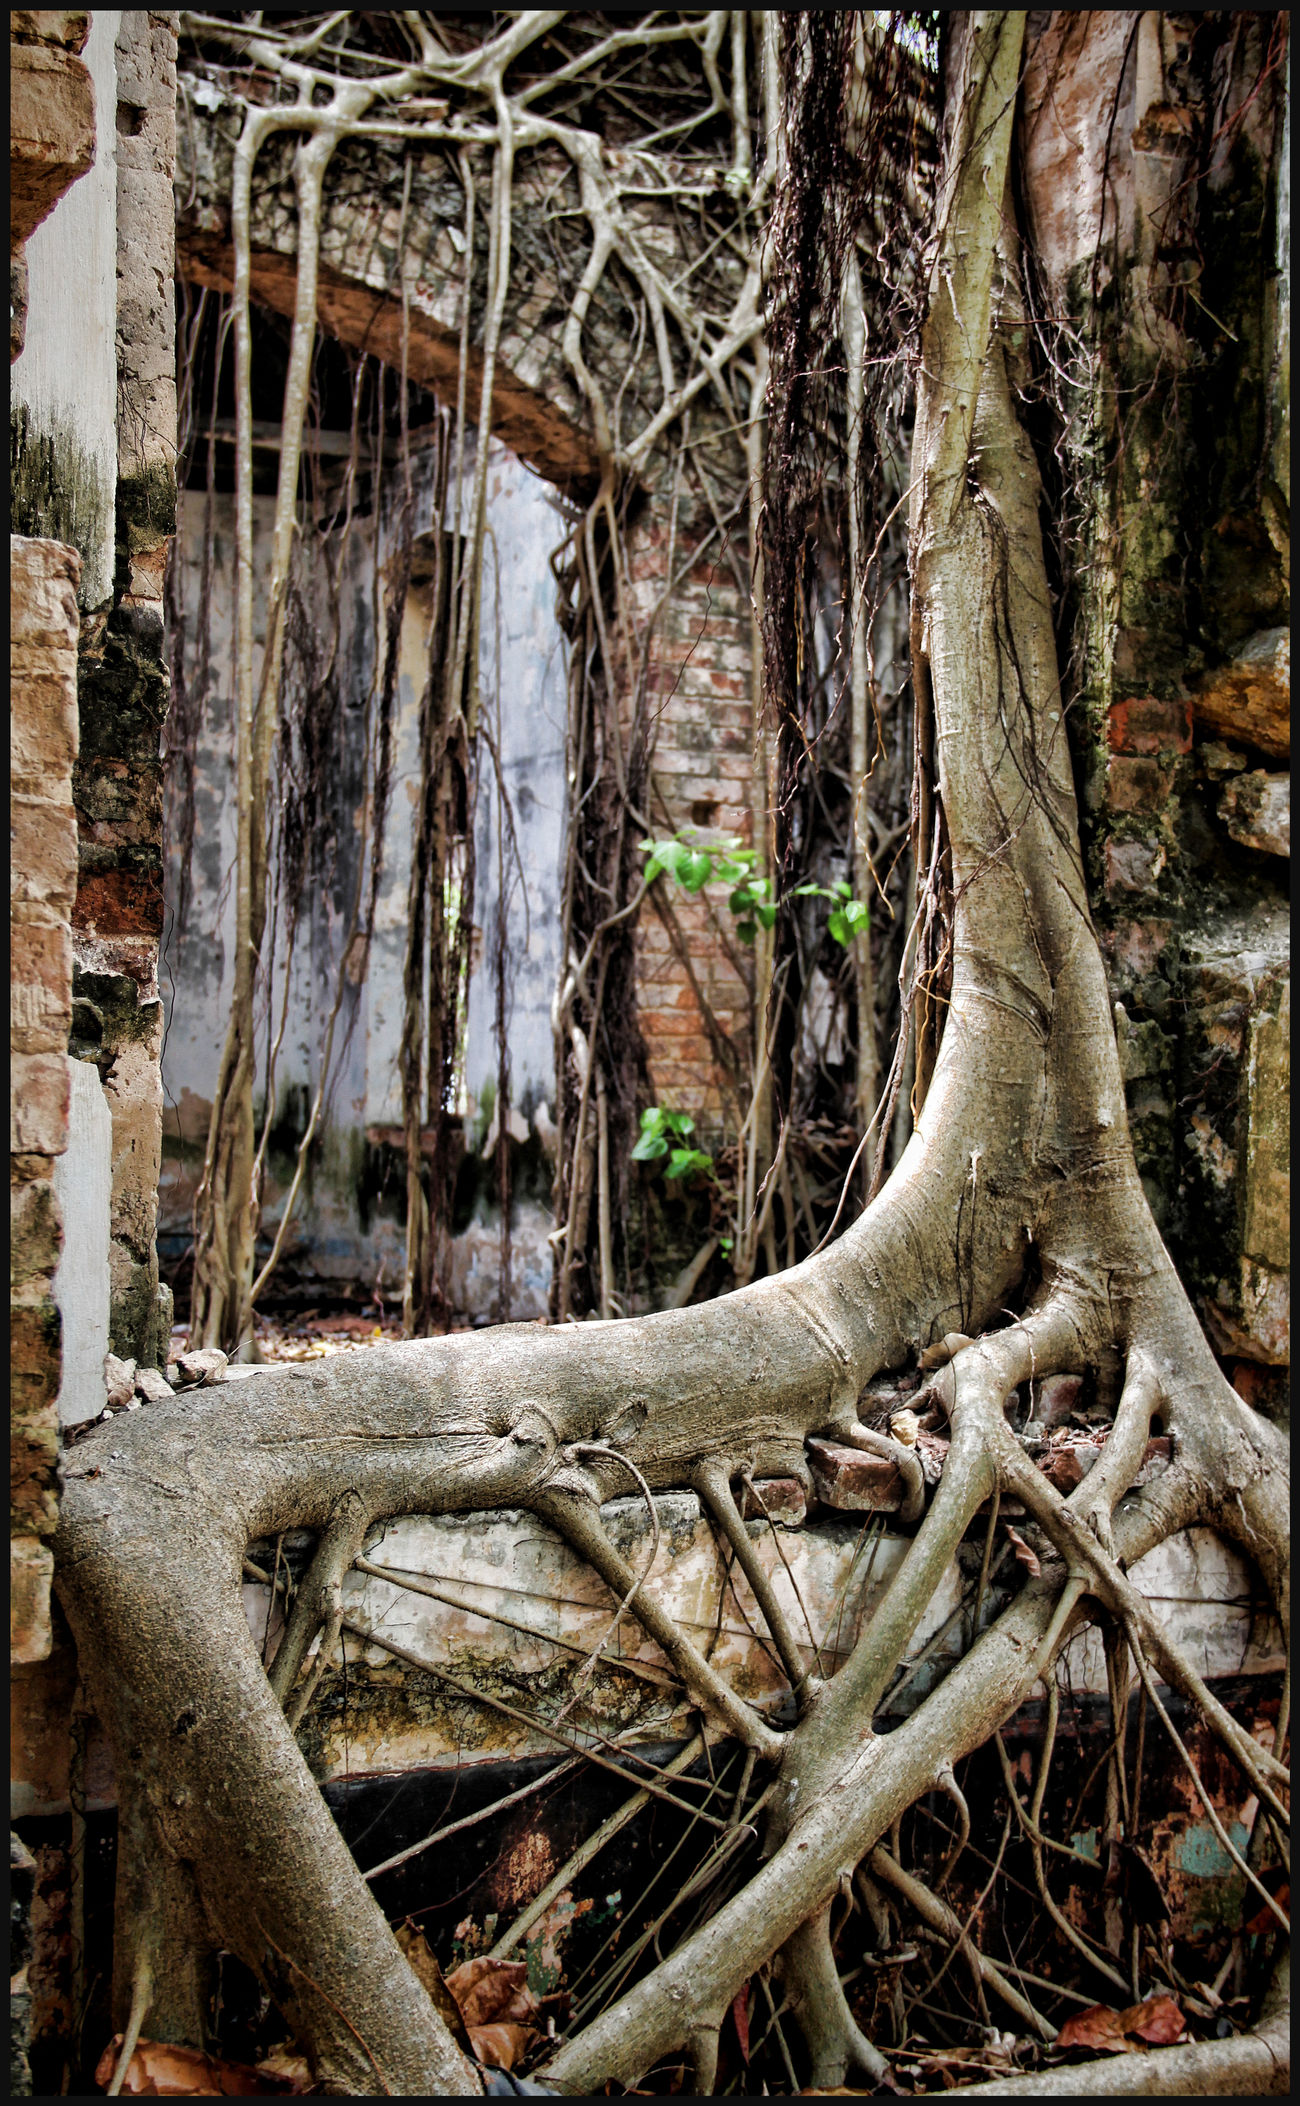 Abandoned House Beauty In Nature Branch Nature Root Run-down Tranquility Tree Trunk Vietnam Travel Wall - Building Feature